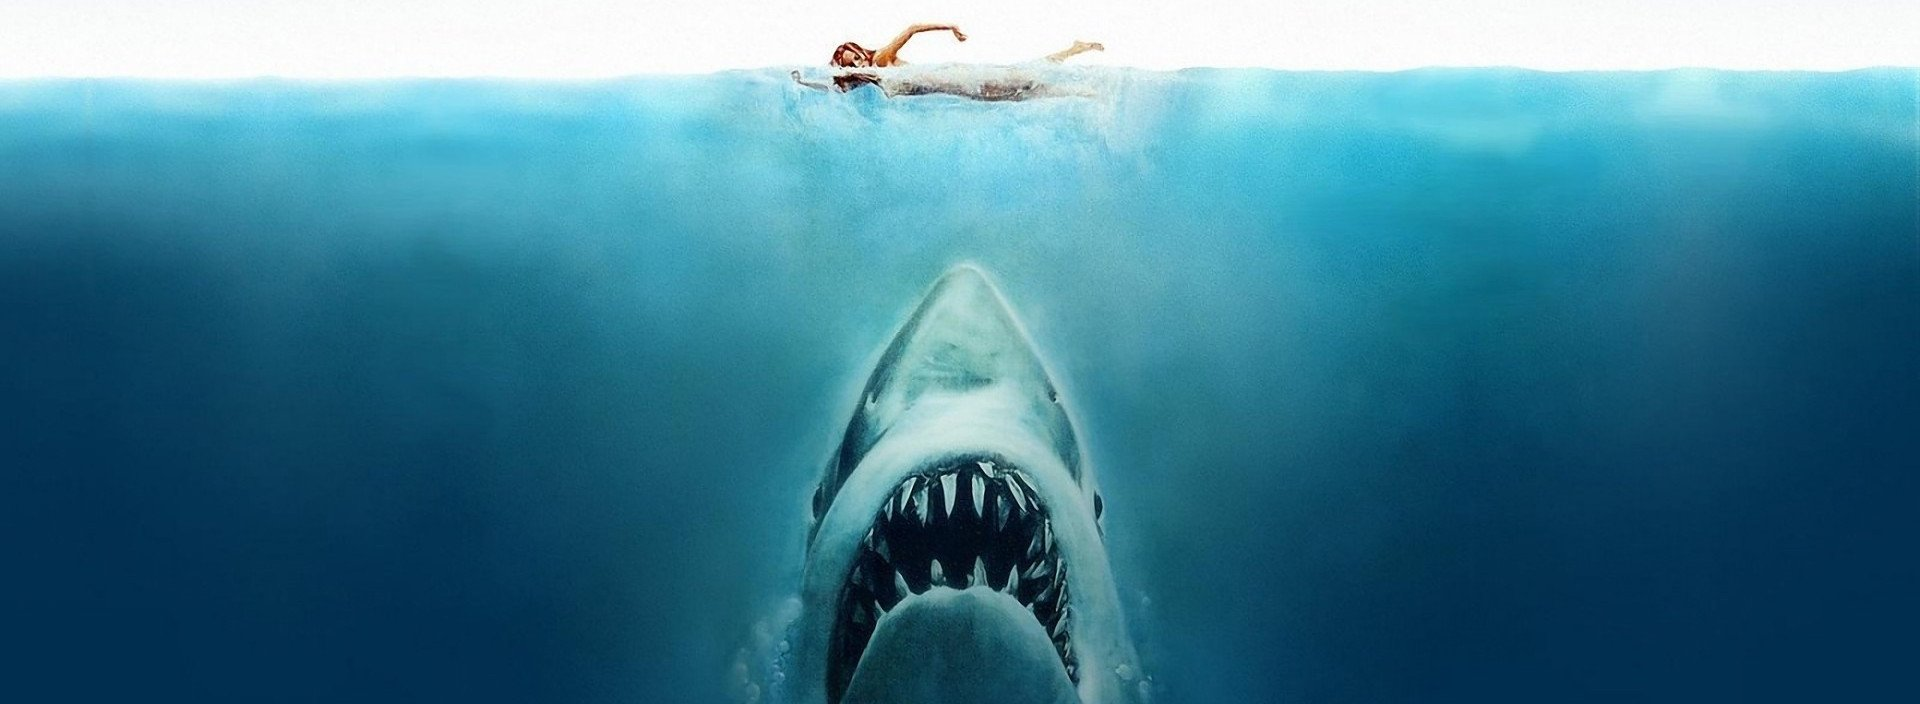 Jaws/